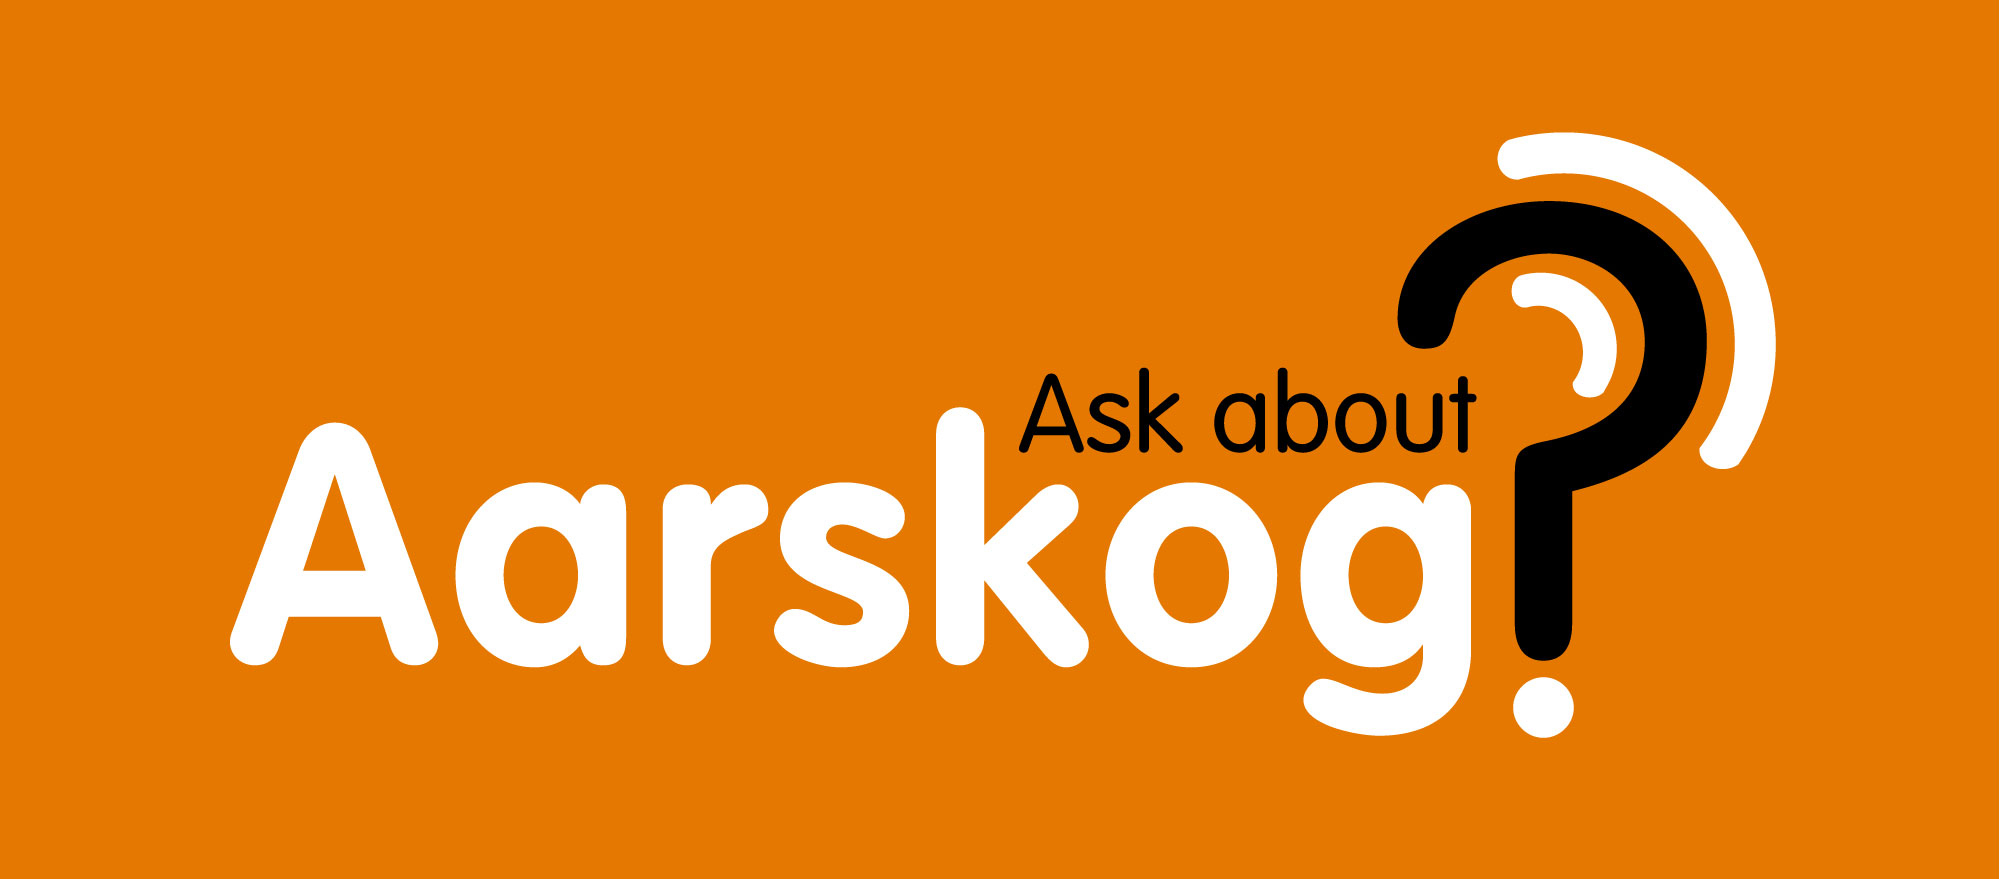 International Aarskog Awareness week 29th September - 4th October 2019